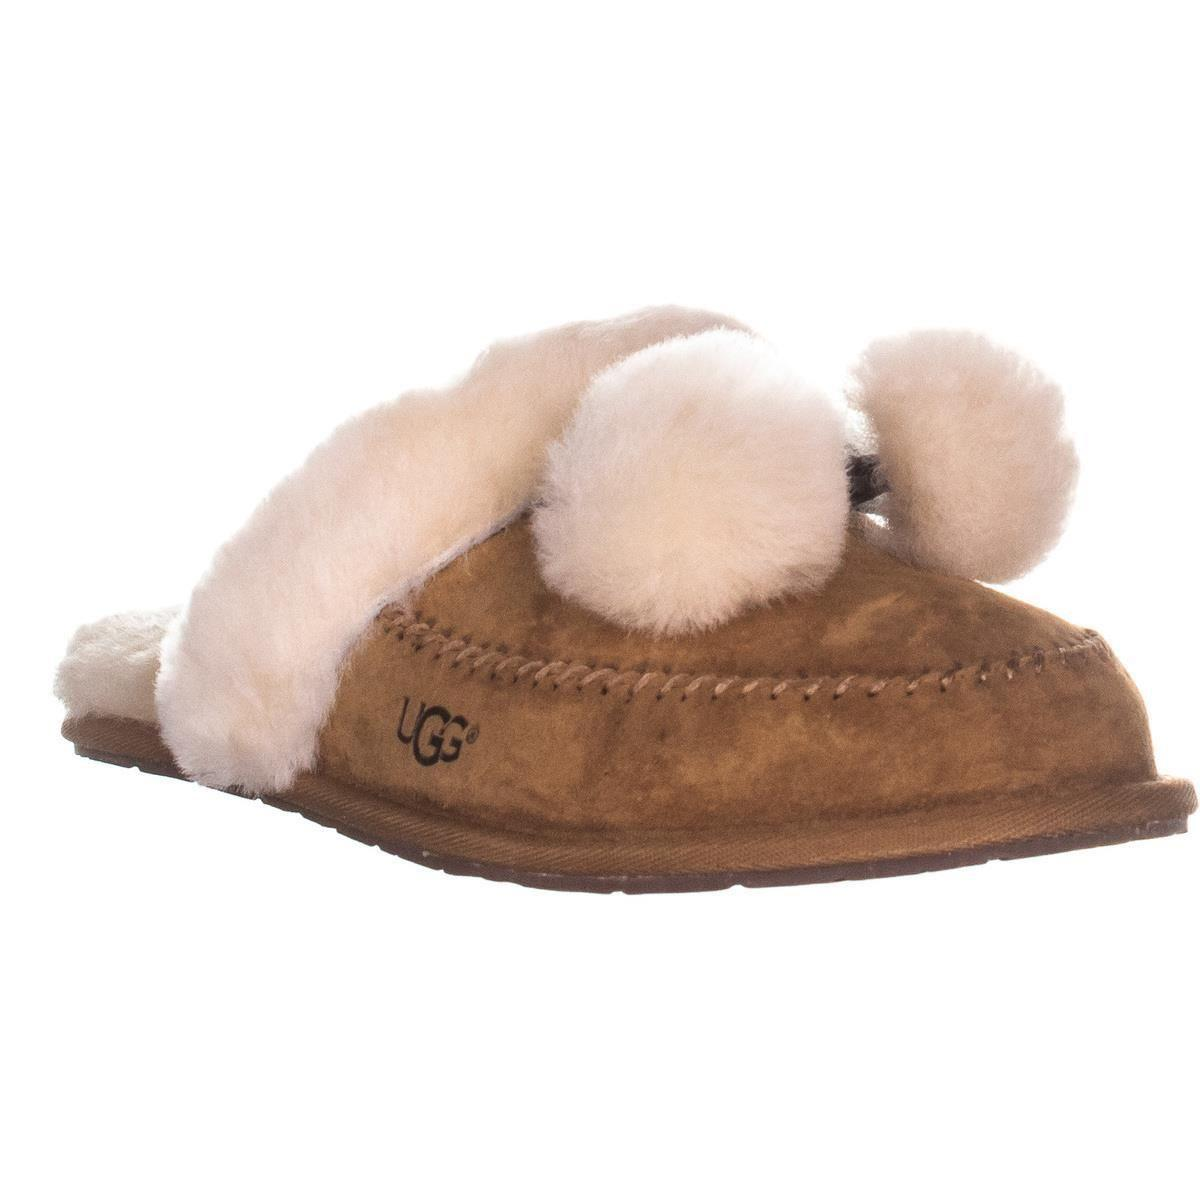 7859f25454d Lyst - UGG Hafnir Slide Pom Pom Slippers in Brown